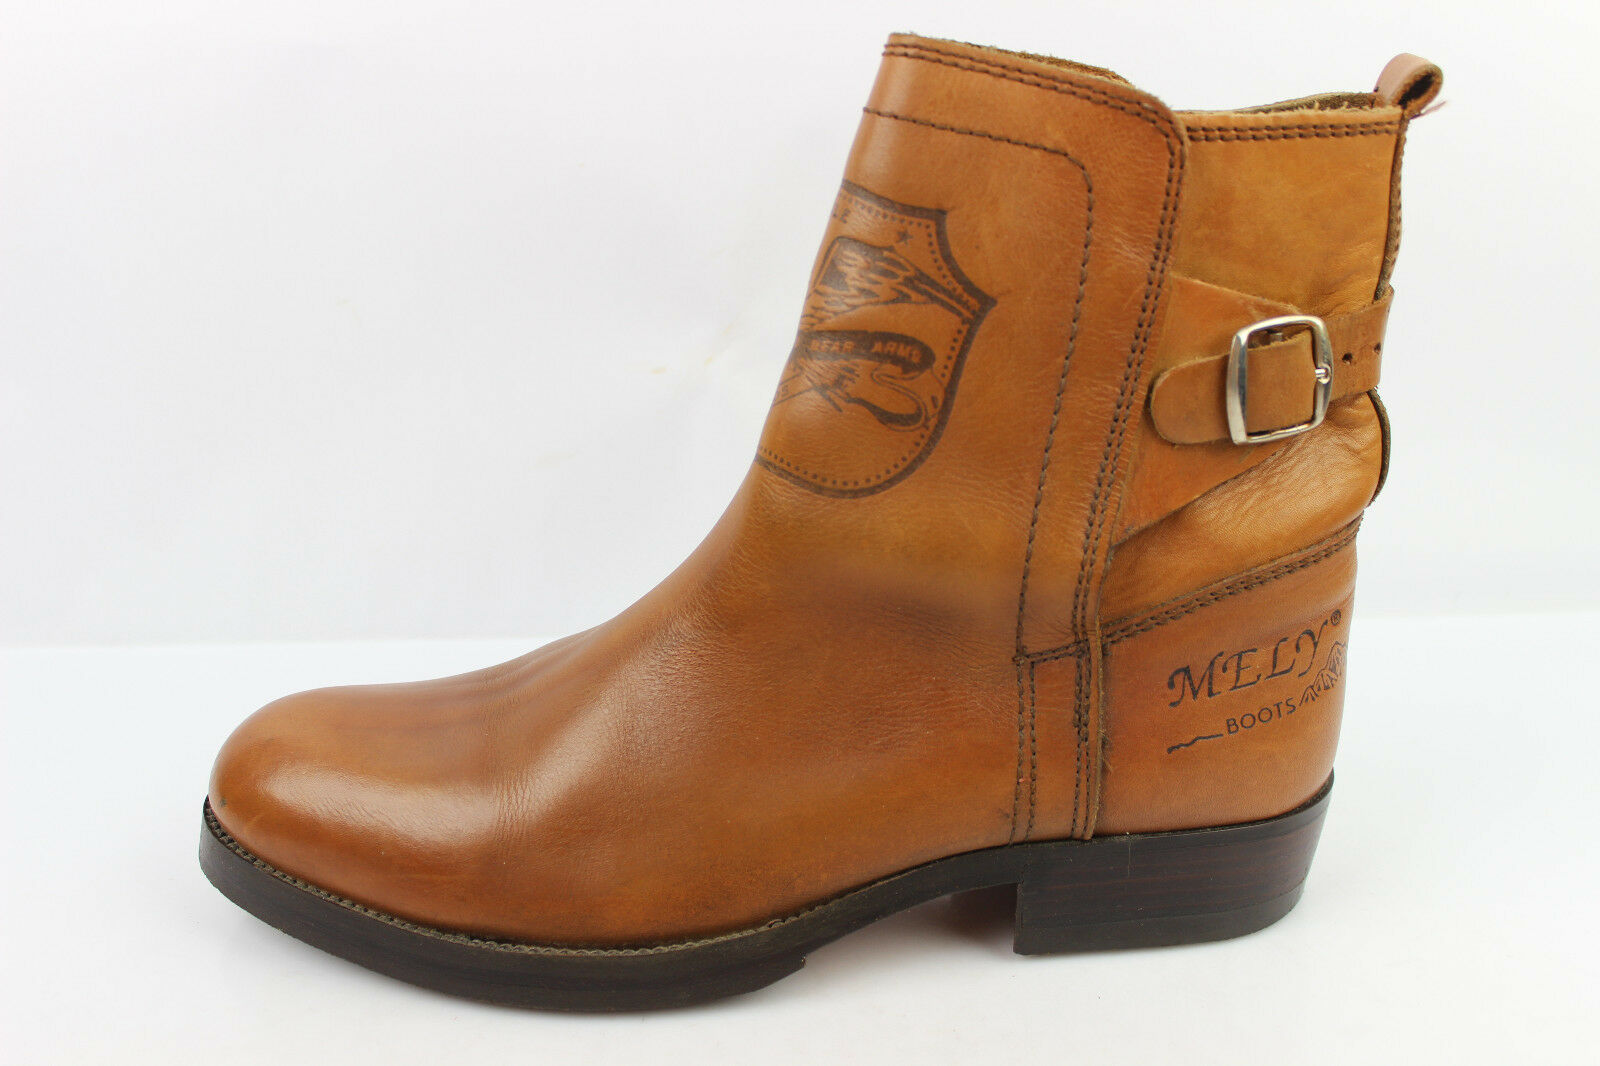 VINTAGE Bottines MELITTO MELY Stiefel Tout Cuir Fauve T 44 44 44 TBE 3be64a